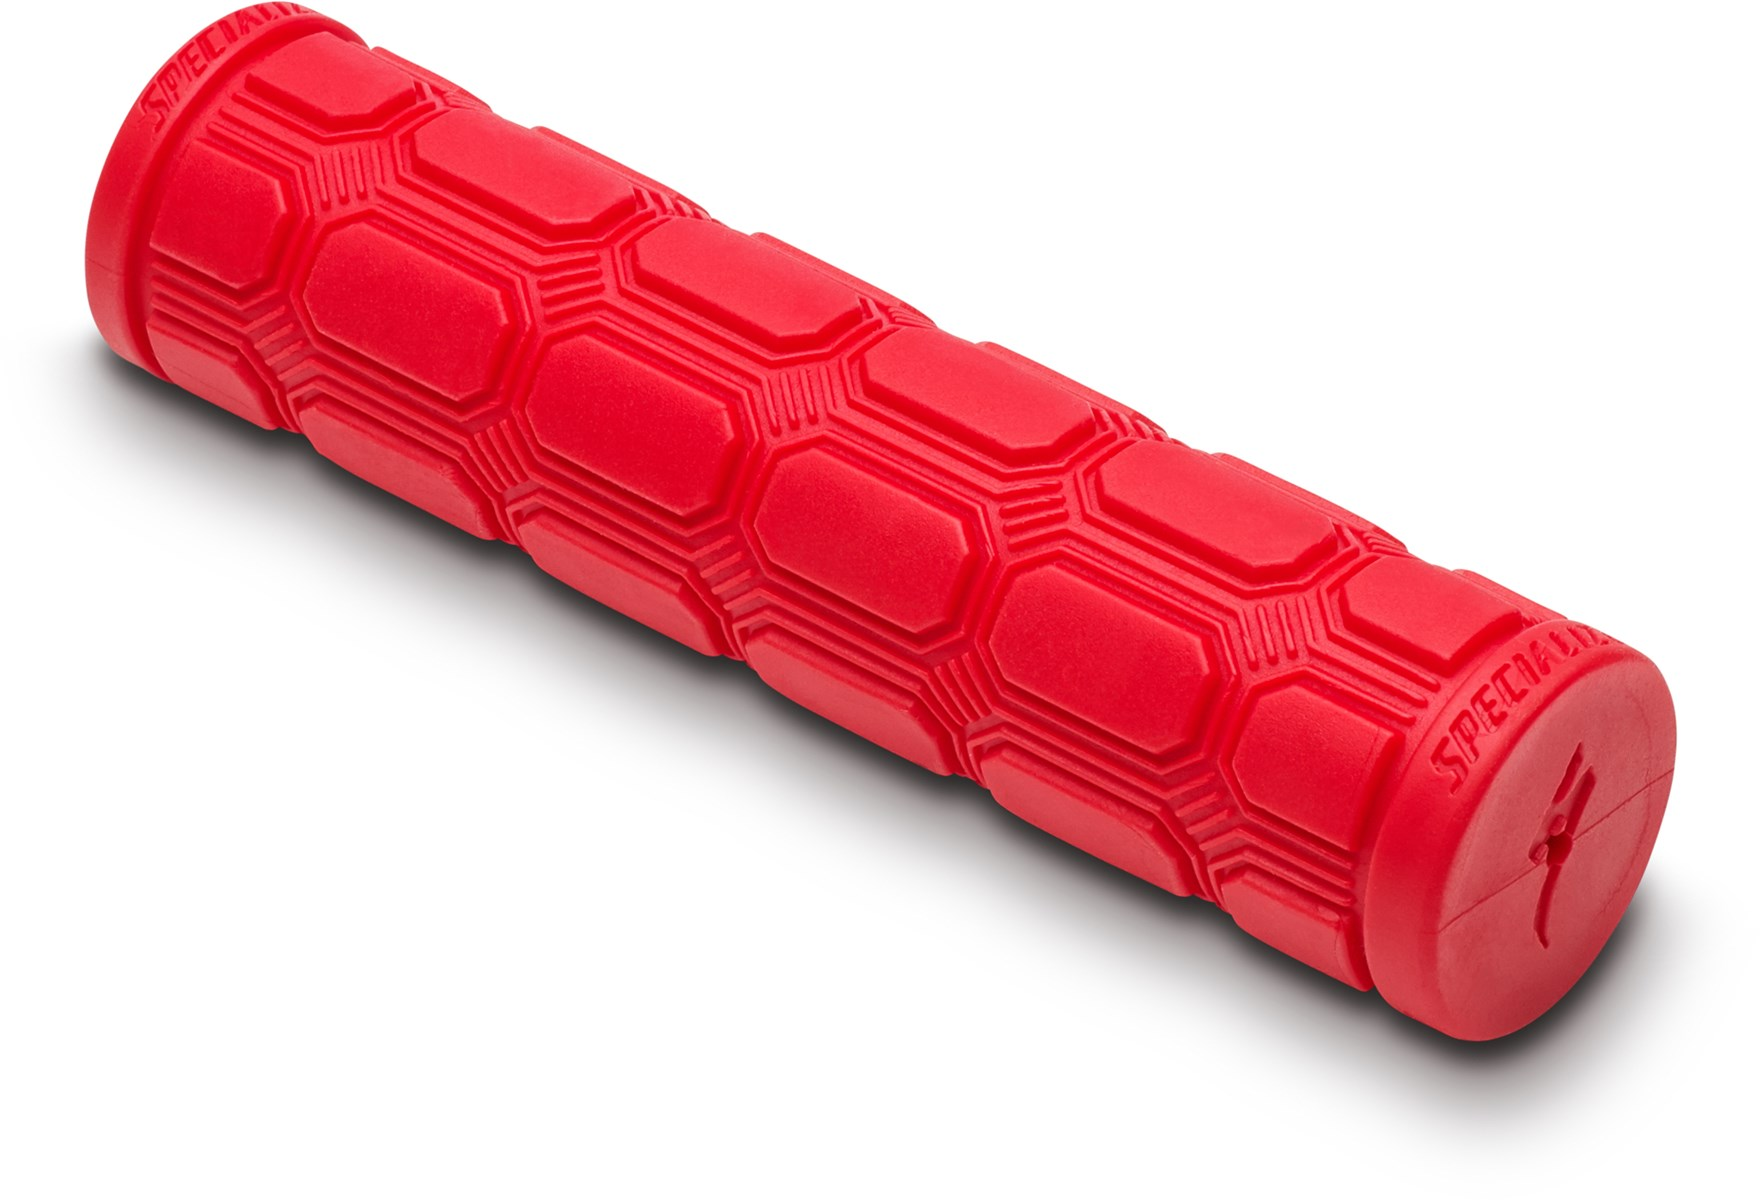 2020 Specialized Enduro Mountain Bike Grips in Red £12 00